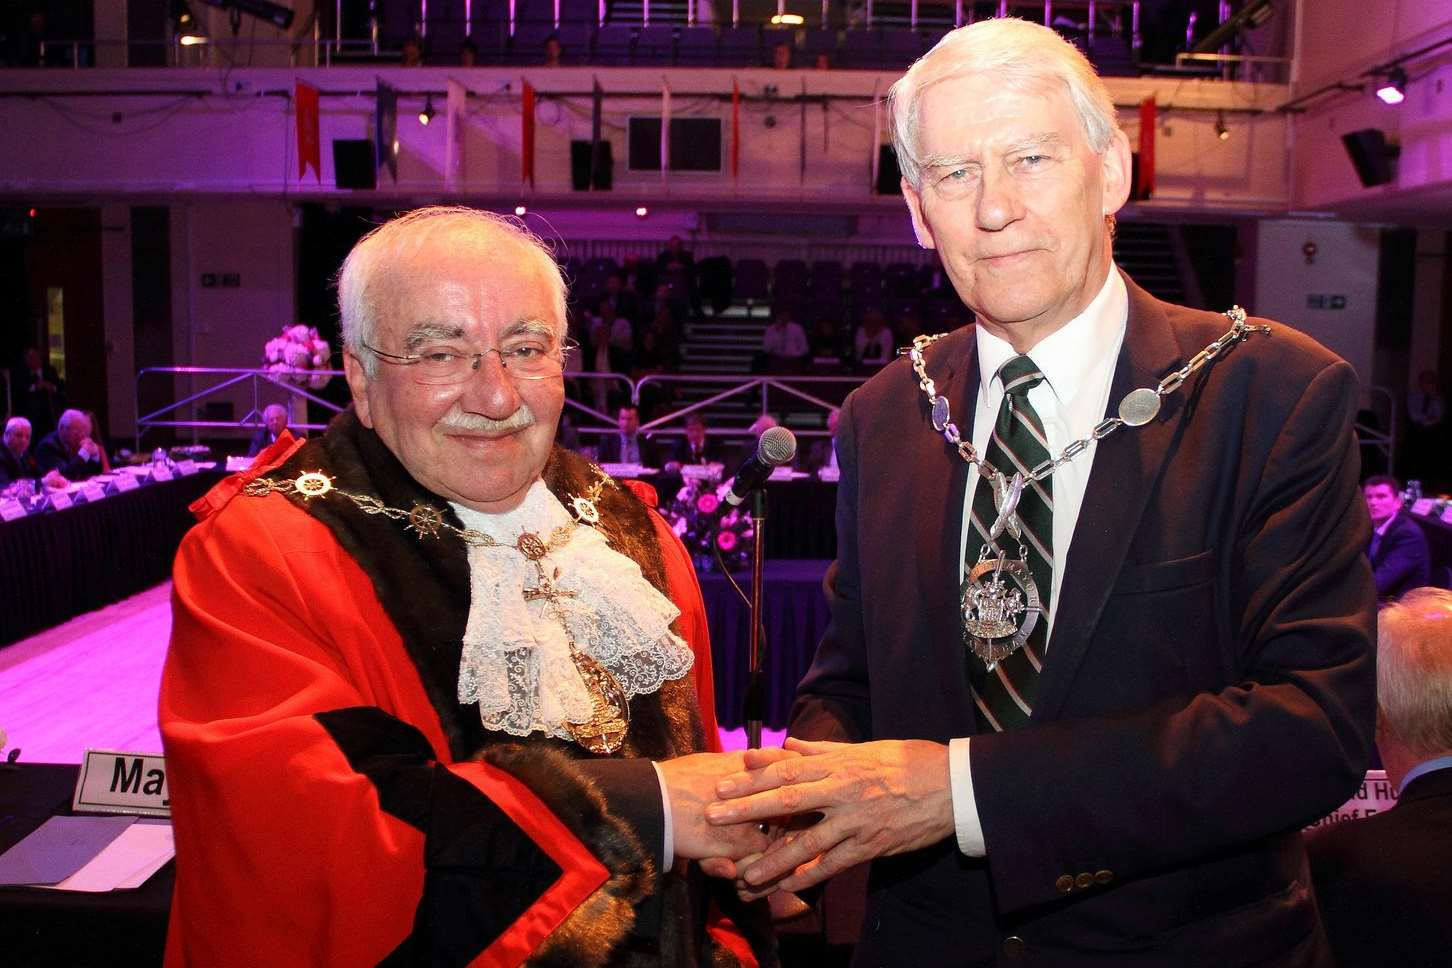 Cllr David Hurley was announced as the new deputy mayor of Gravesham. Picture: Gravesham Borough Council